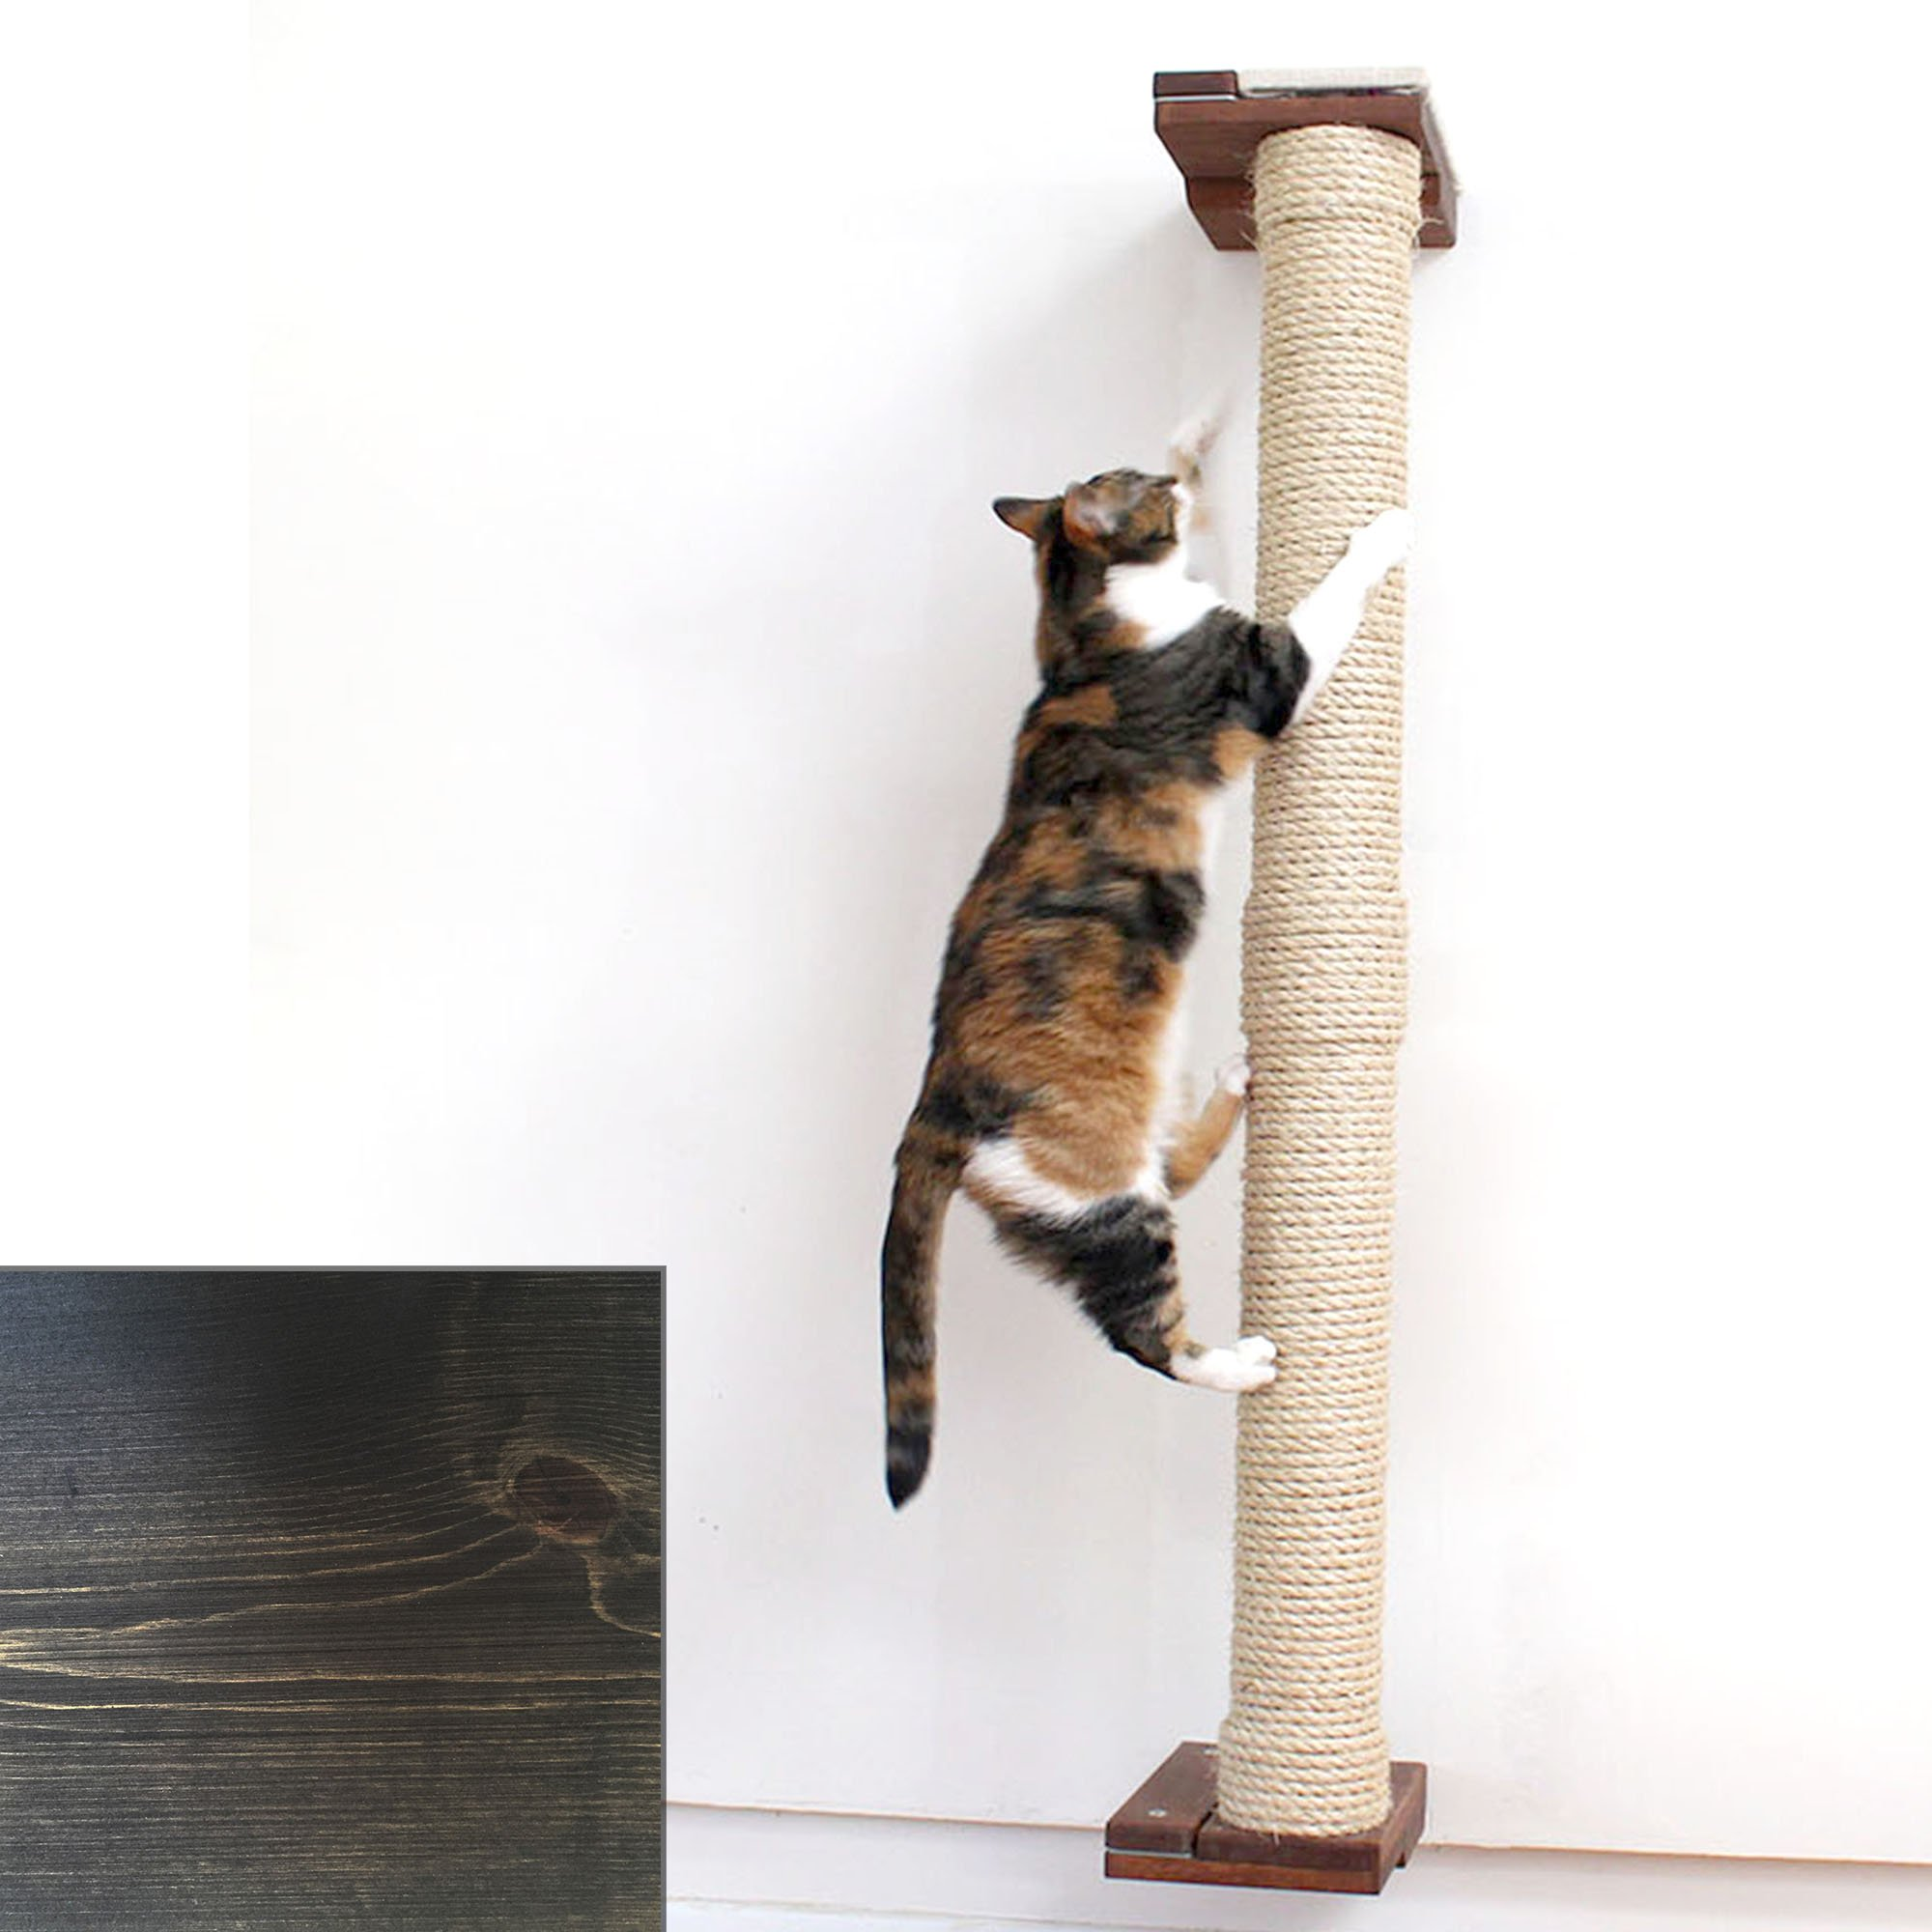 """Catastrophicreations The Cat Mod 48"""" Wall Mounted Sisal Pole For Cats In Onyx, 8 In W X 53 In H, 18 Lb"""